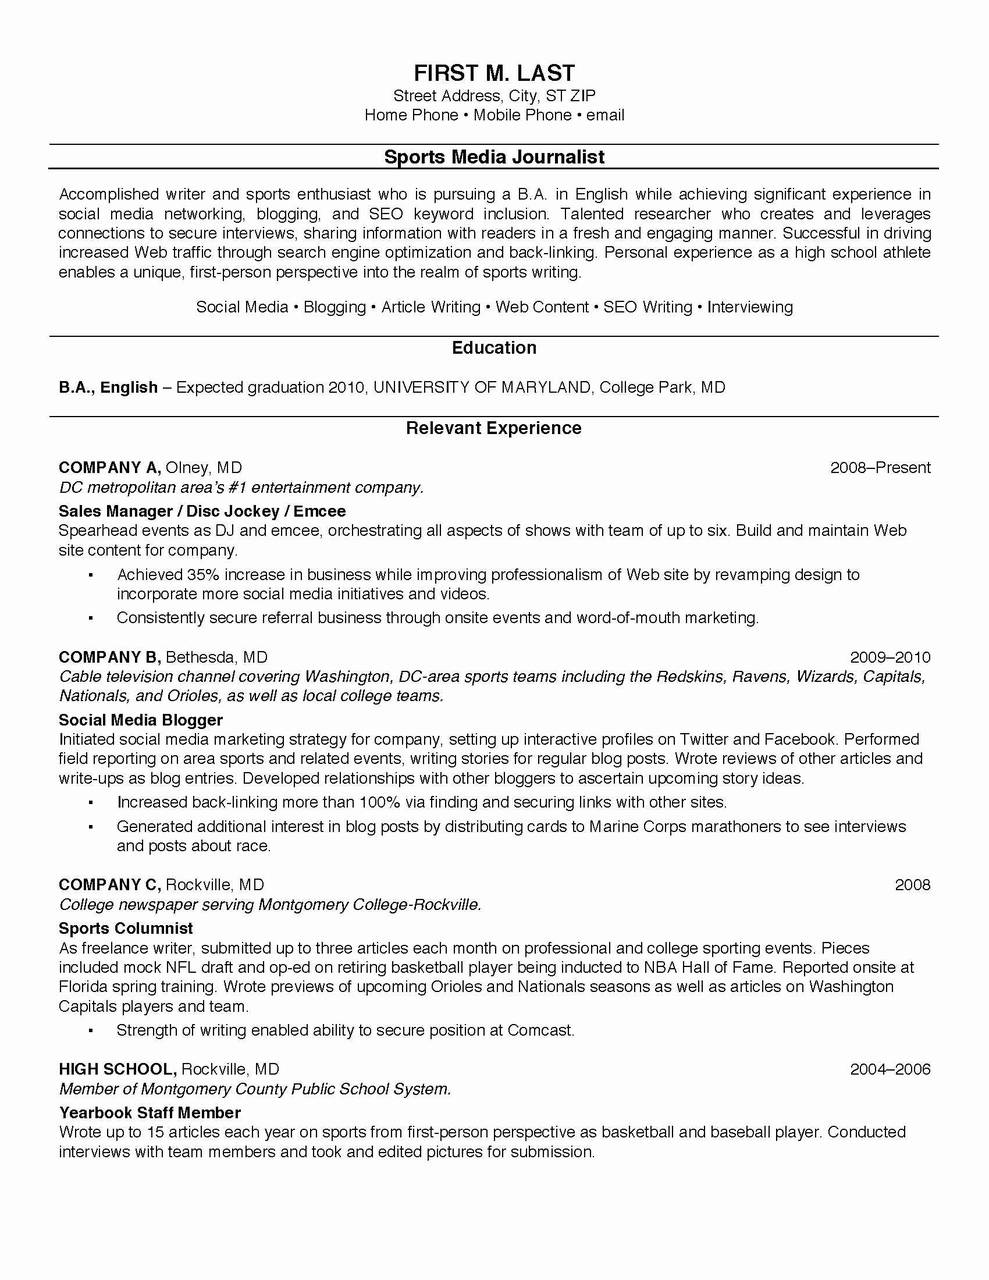 013 Essay Example Free Argumentative What To Put On College Resume Inspirational Persuasive Should Education Org Not For Everyone Tuition Community Attend Stunning Topics Examples Middle School Obesity Full